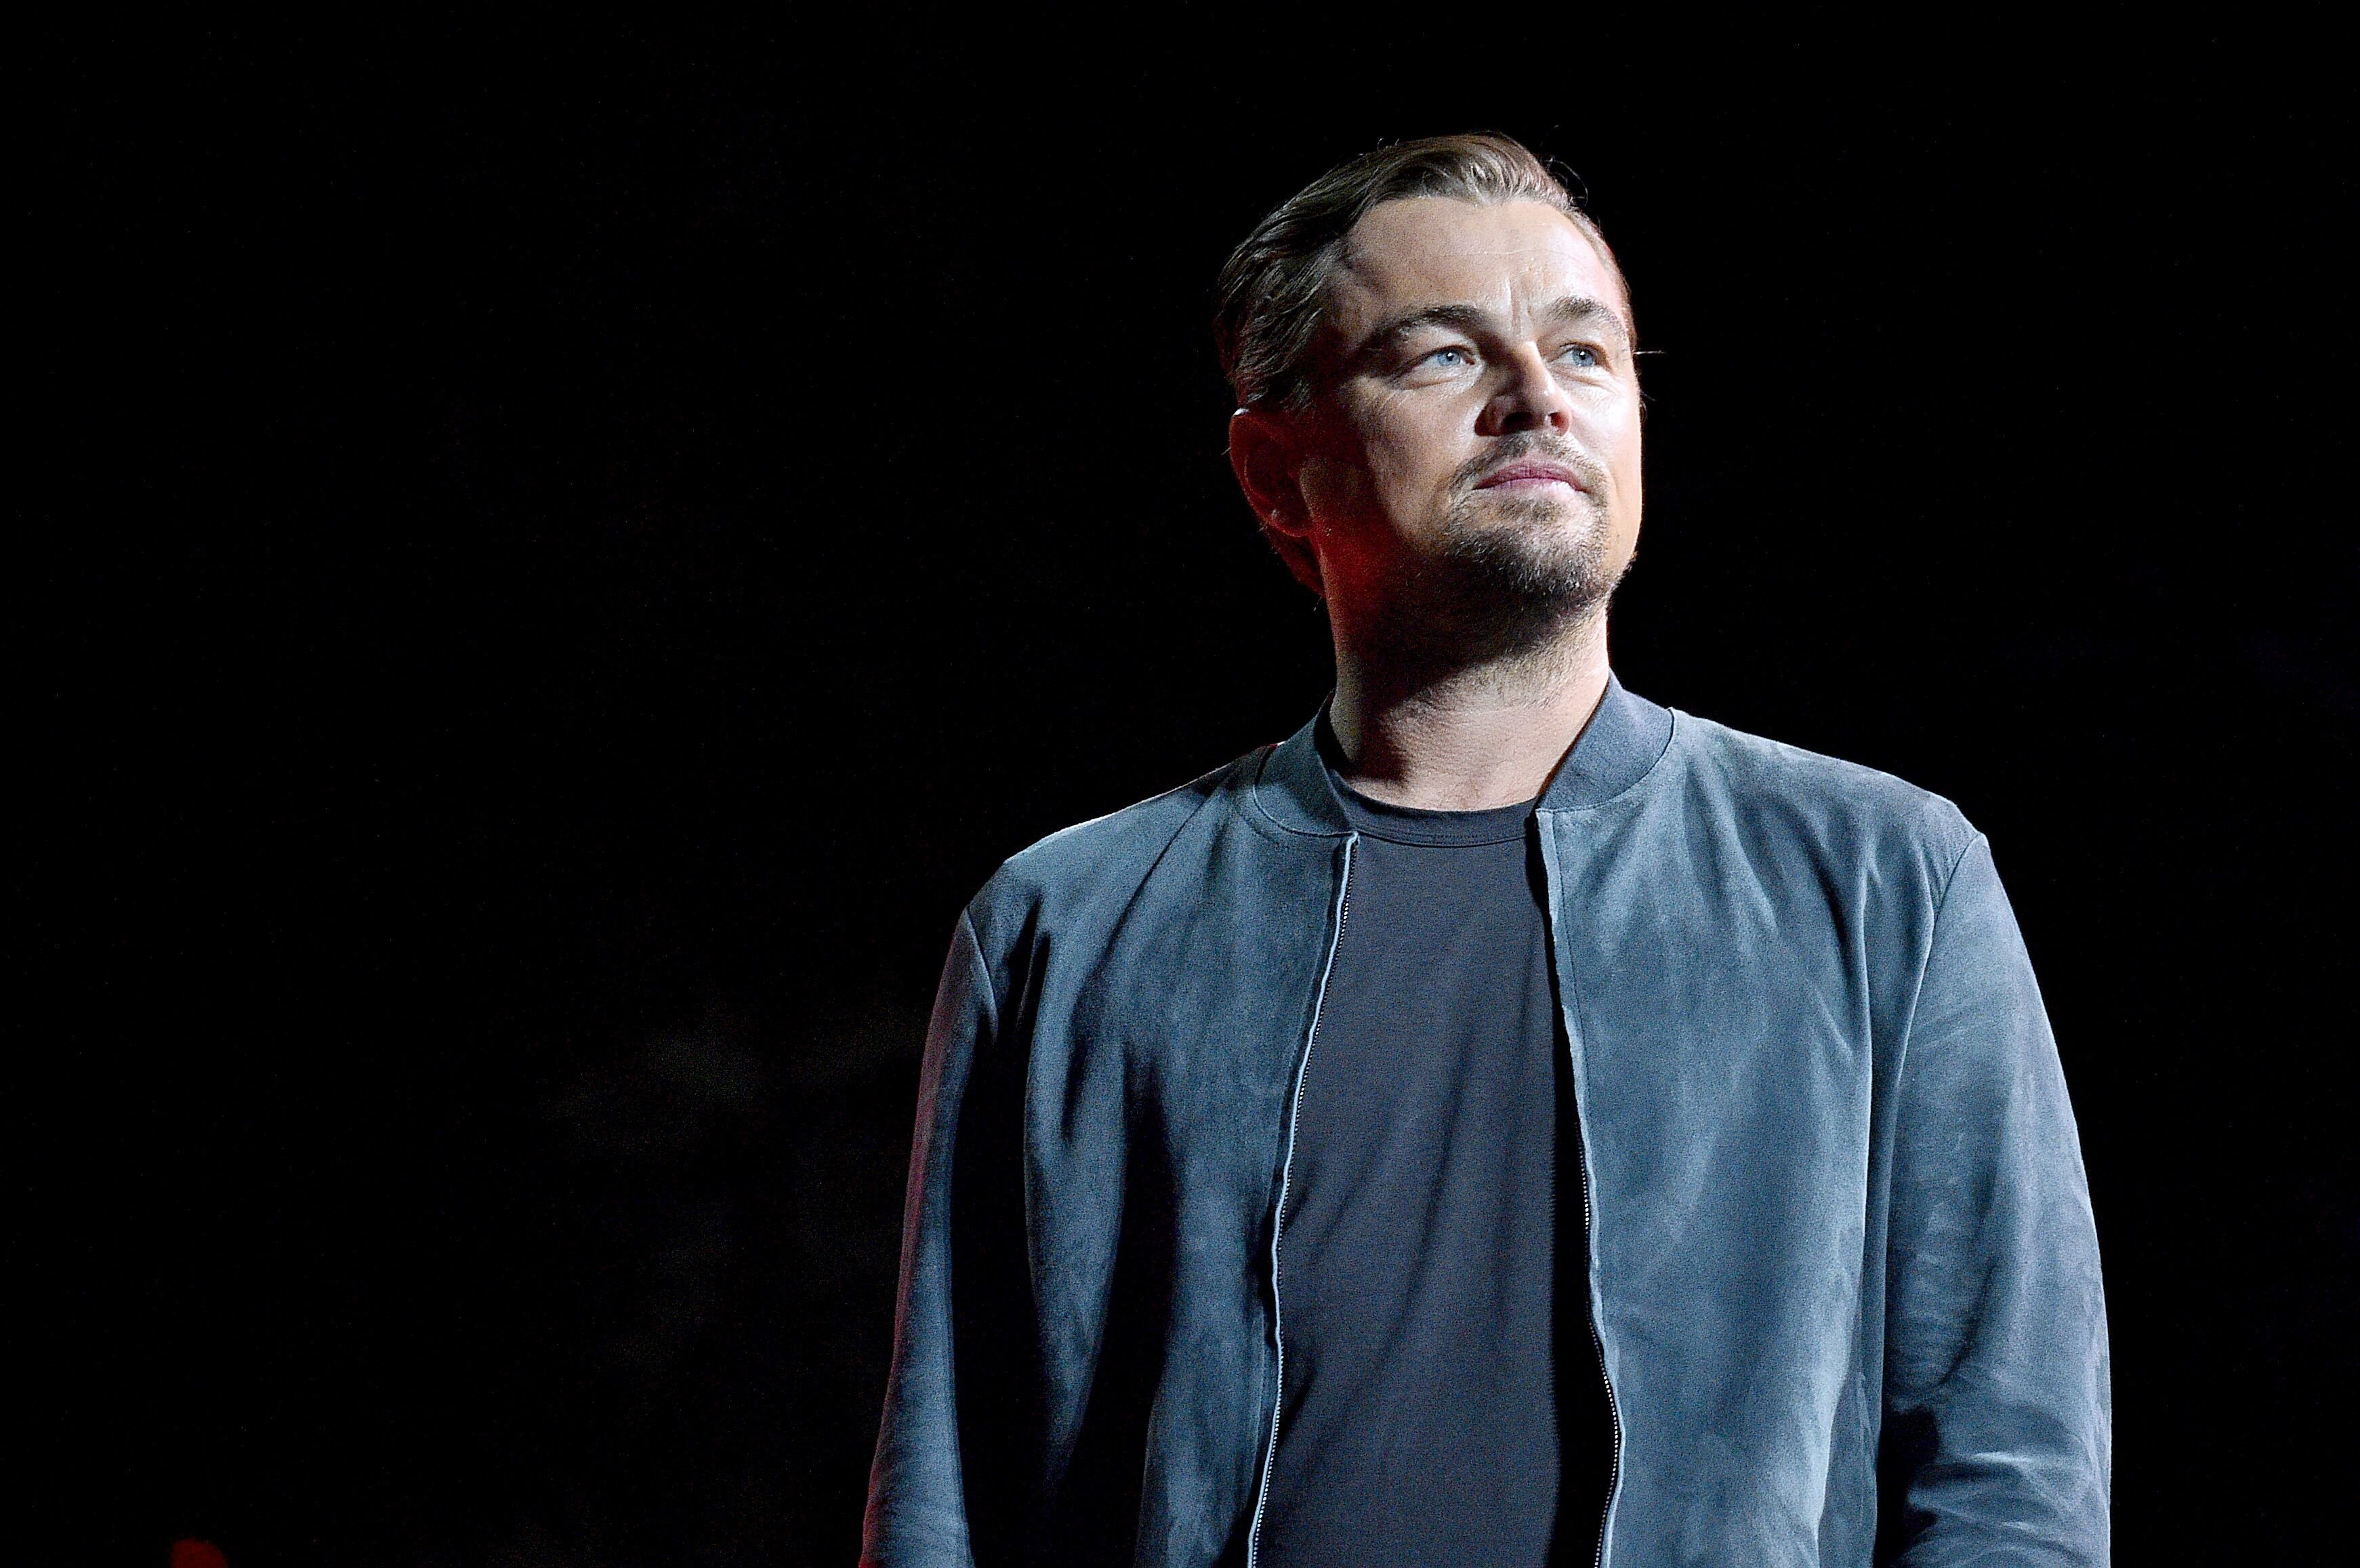 Leonardo DiCaprio speaks onstage during the 2019 Global Citizen Festival: Power The Movement. | Source: Getty Images